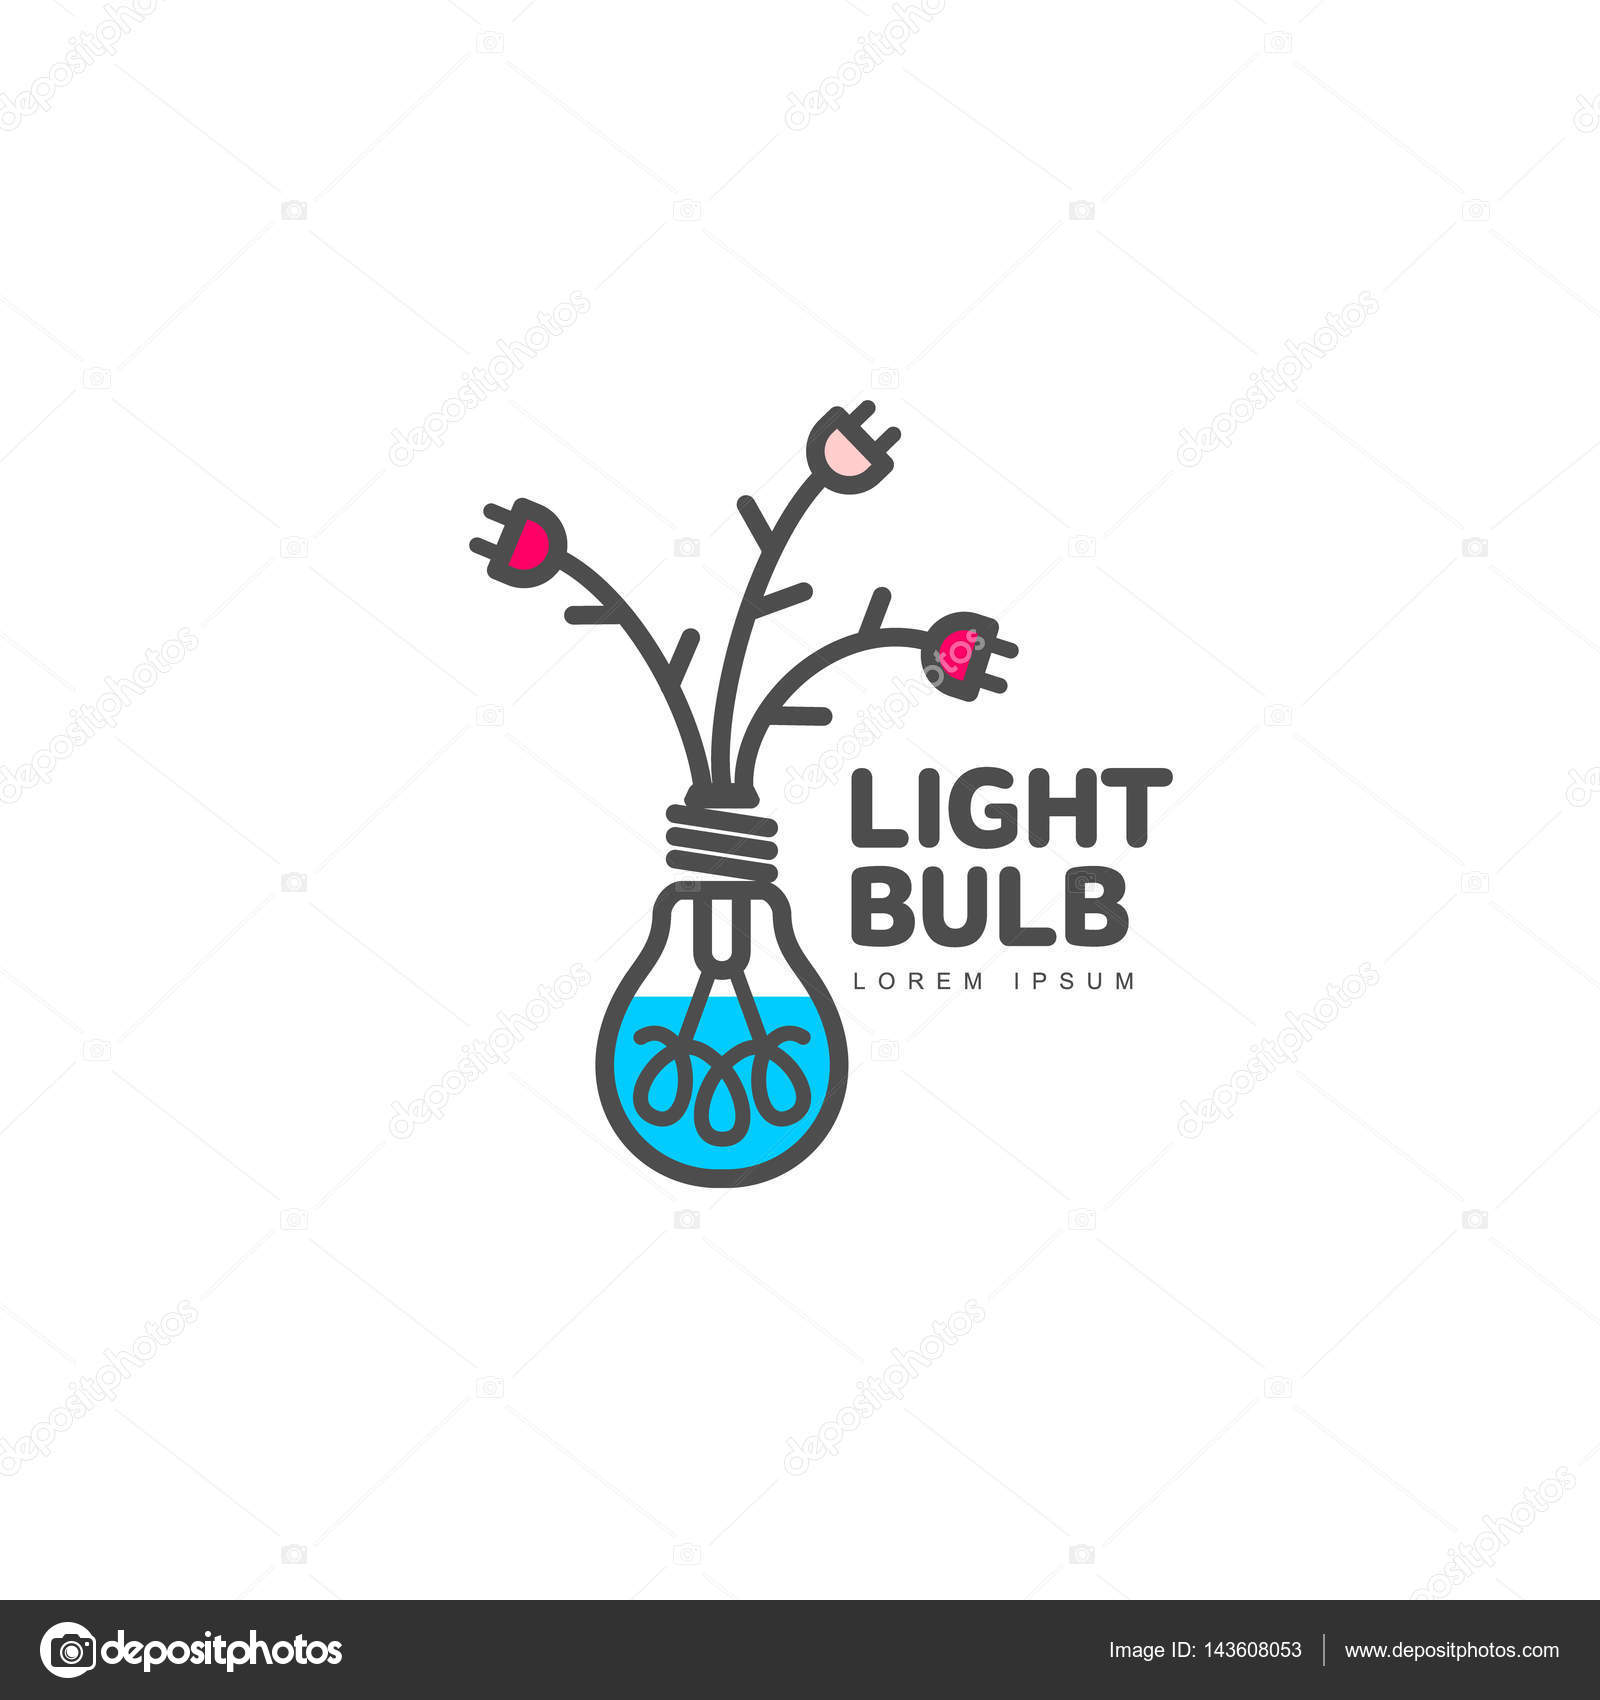 Light Bulb Logo With Flowers Formed By Cables And Plugs